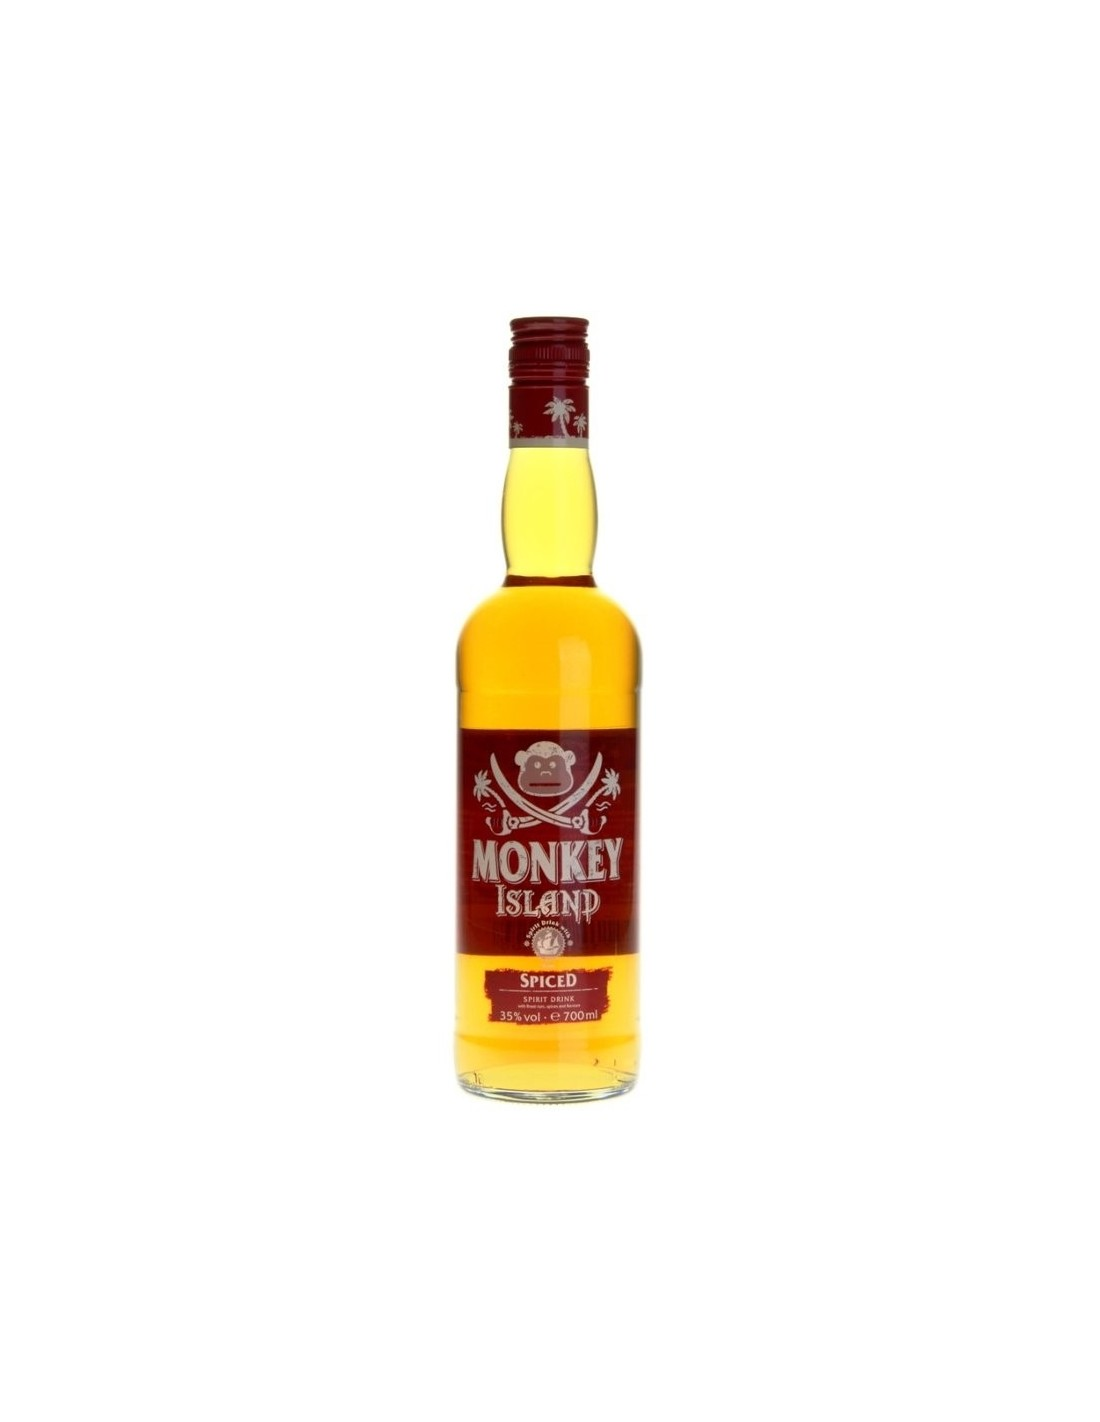 Rom Monkey Island Spiced Gold, 0.7L